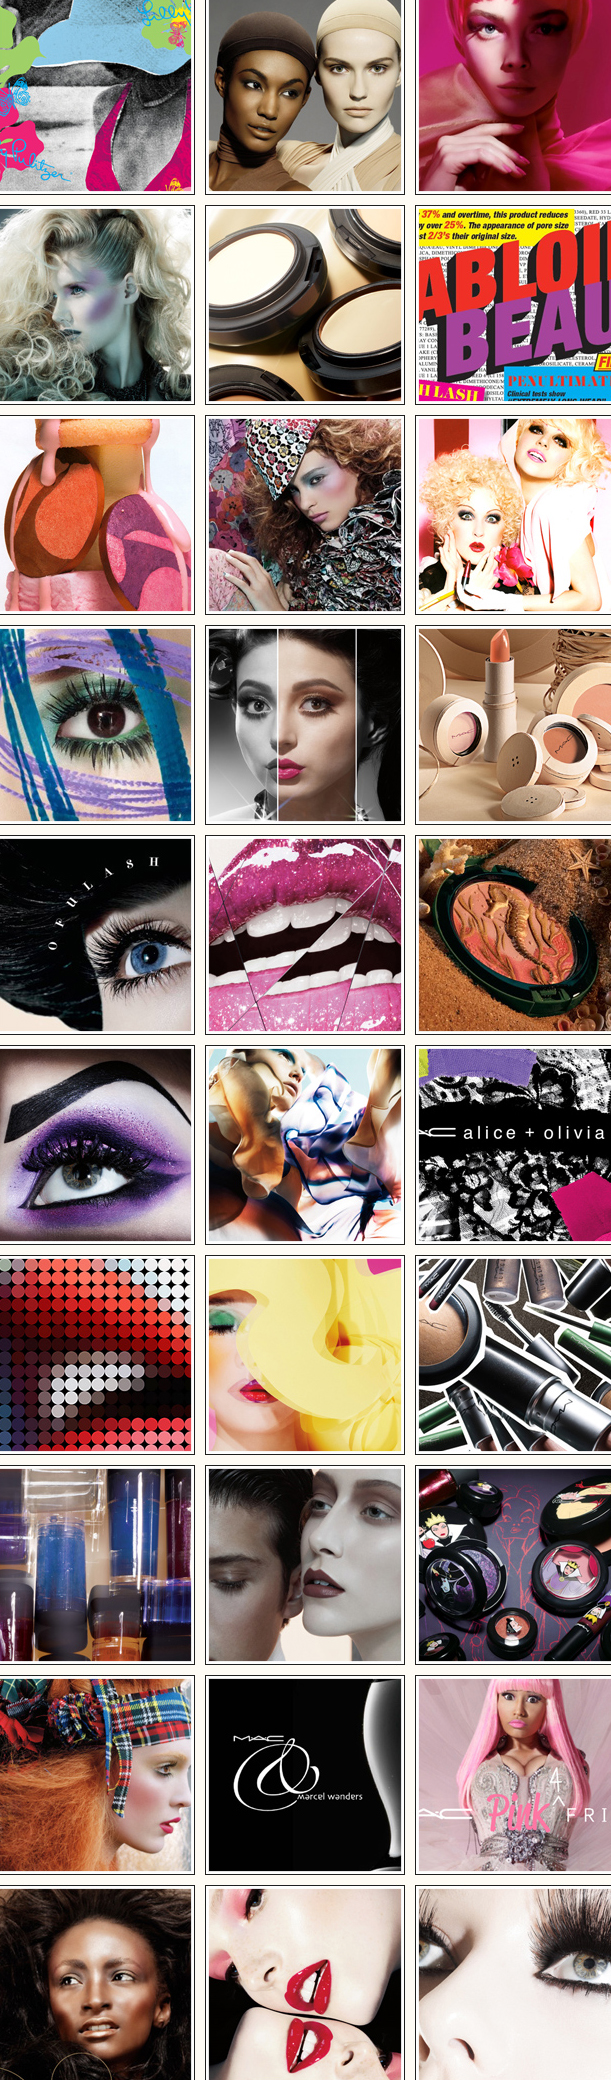 MAC Makeup Collections from 2010 (Archive)